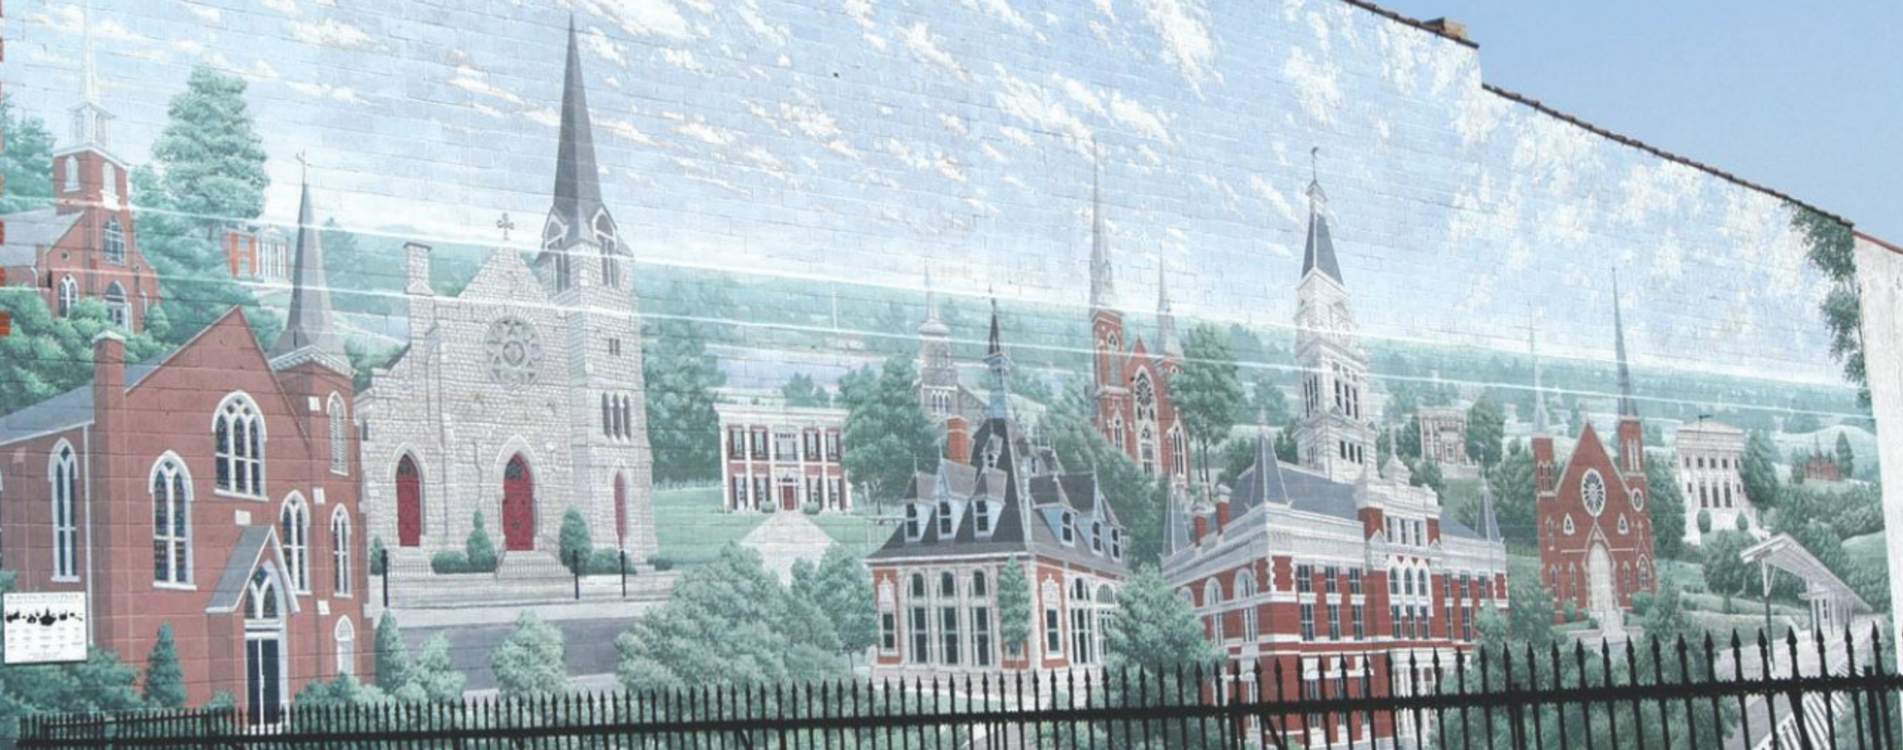 mural of Clarksville historic buildings